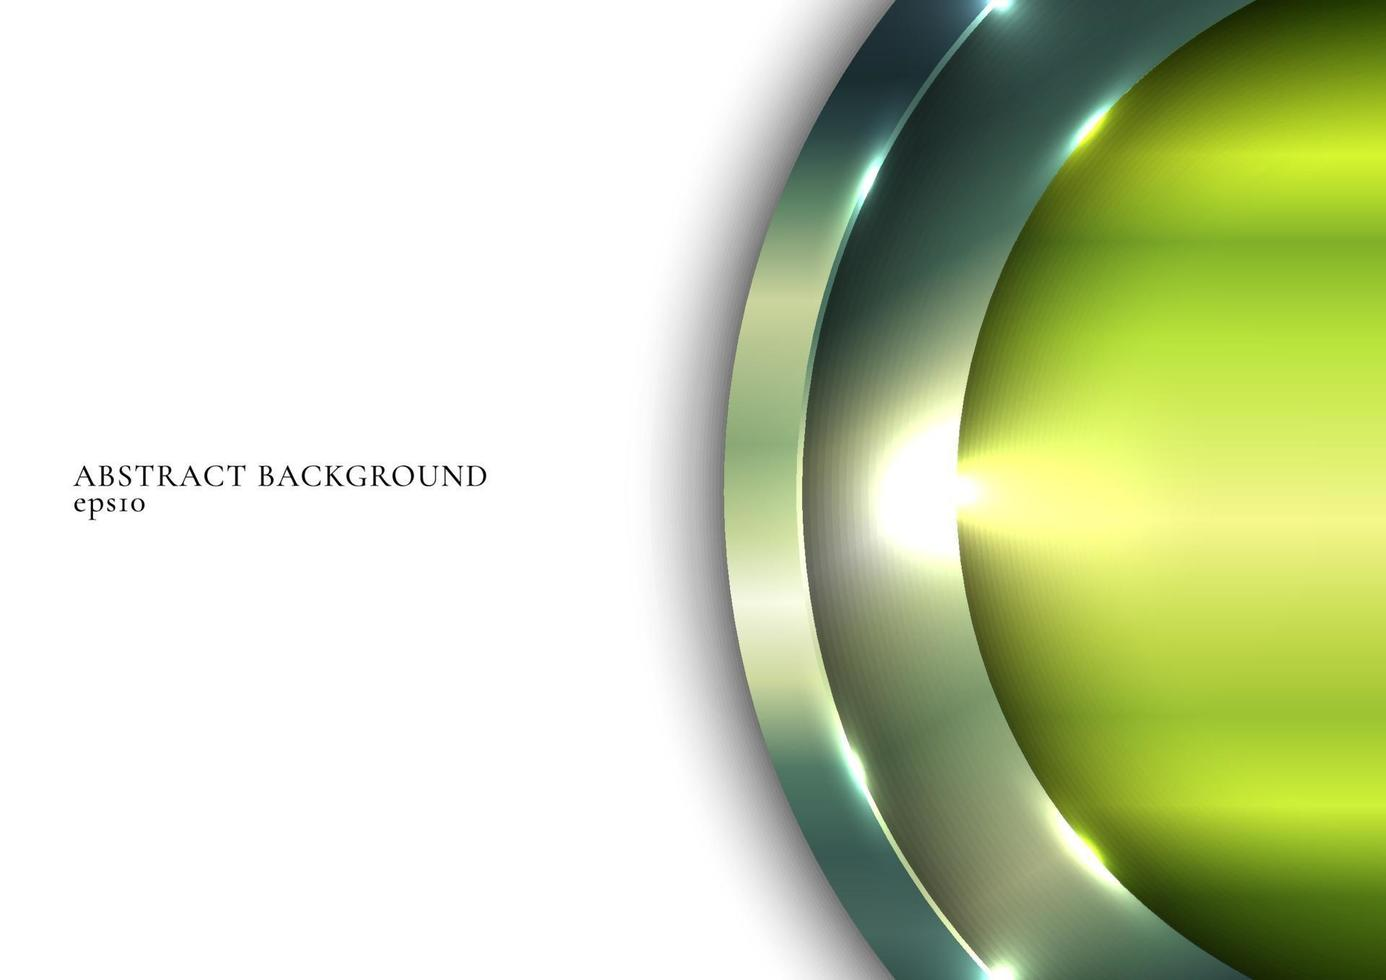 3D green metallic shiny circle overlapping with lighting on white space background vector